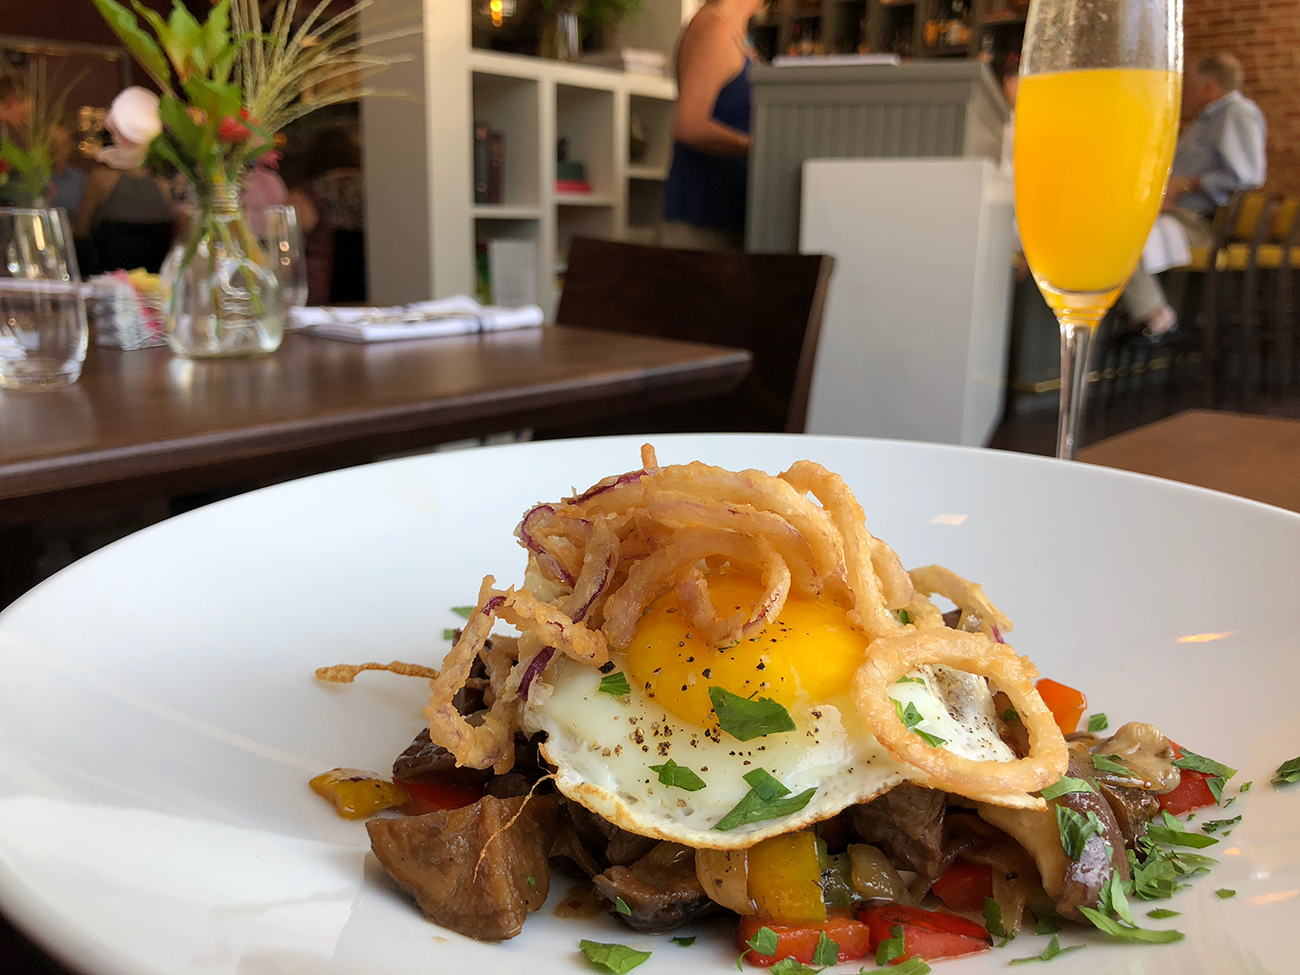 3 quick things to know about brunch at The Stanley